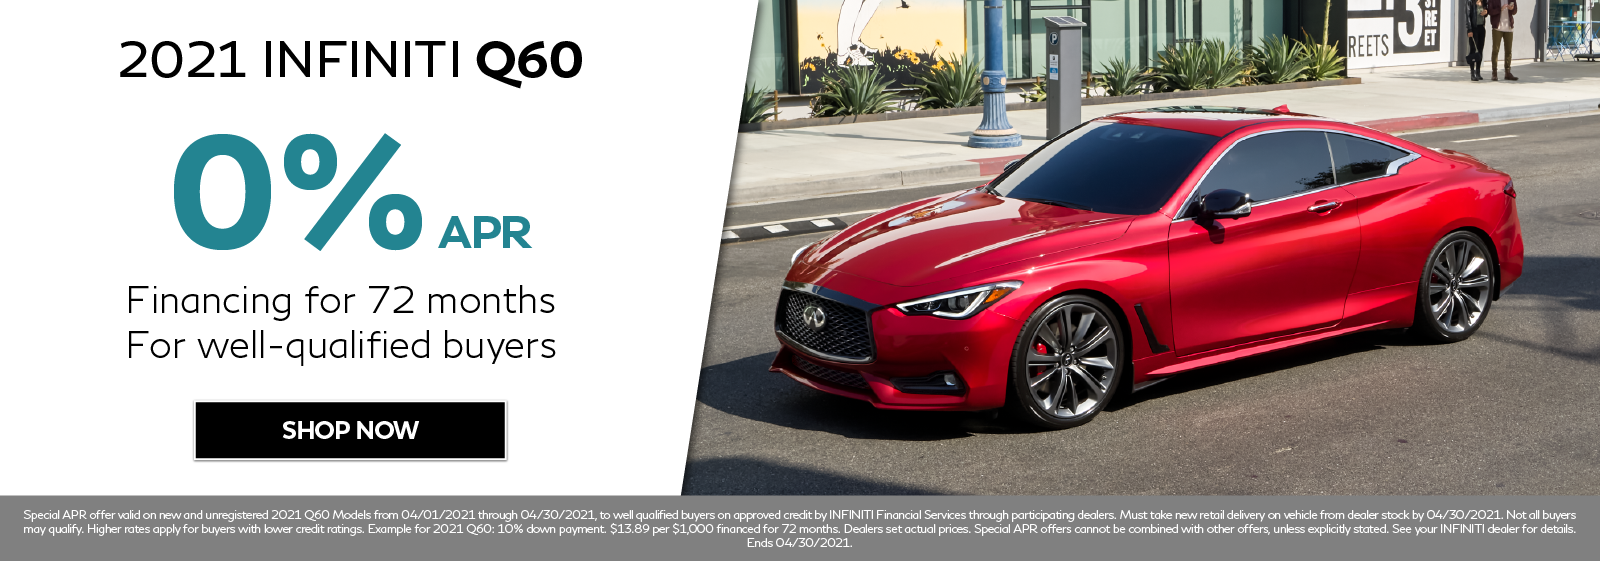 0% APR on new 2021 INFINITI Q60. Click to shop now.